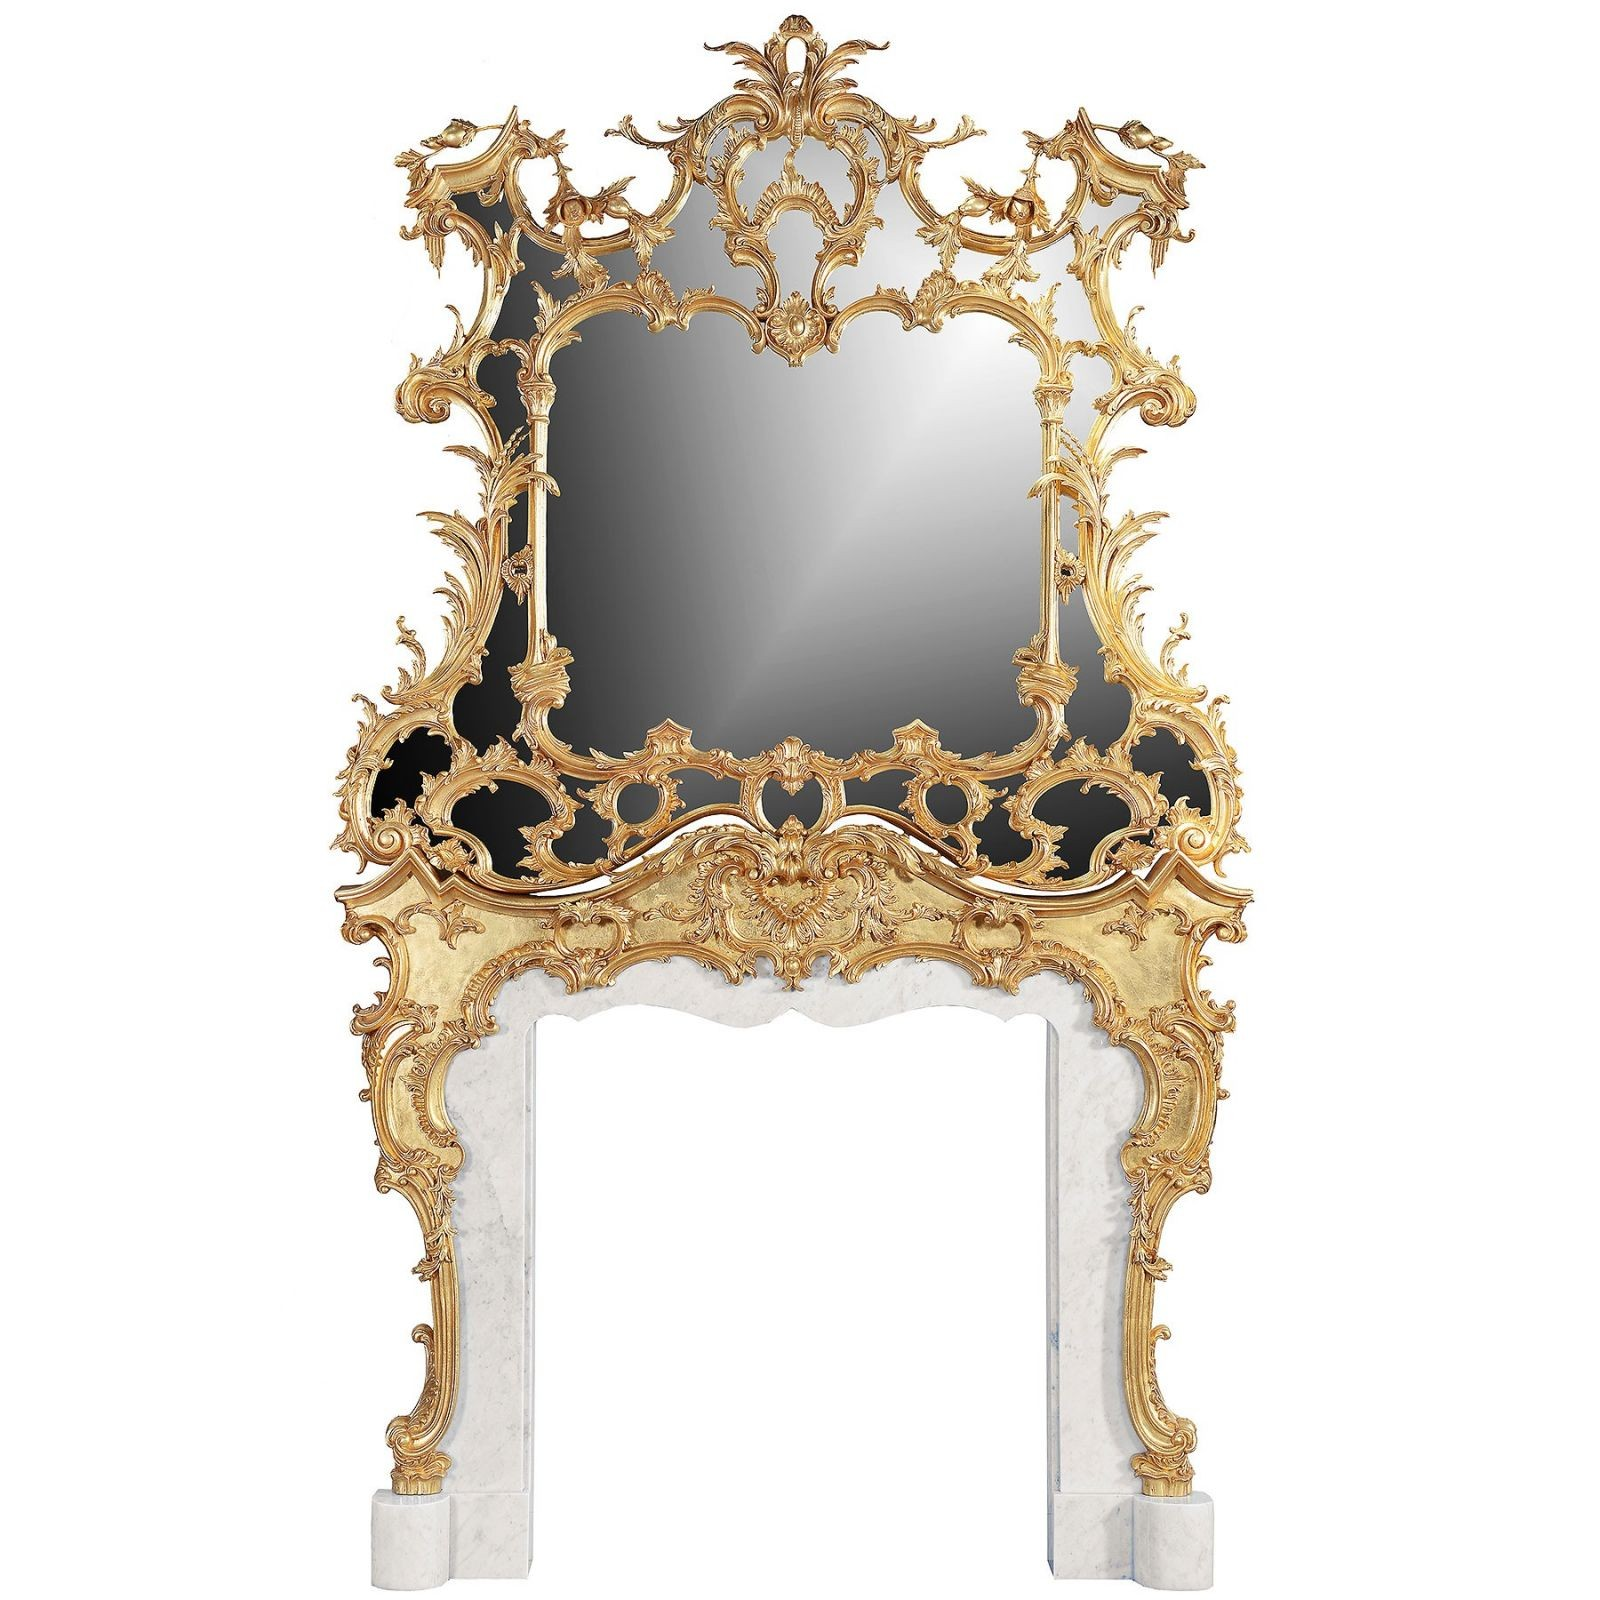 18th century Rococo style giltwood Chimney piece and overmantel mirror